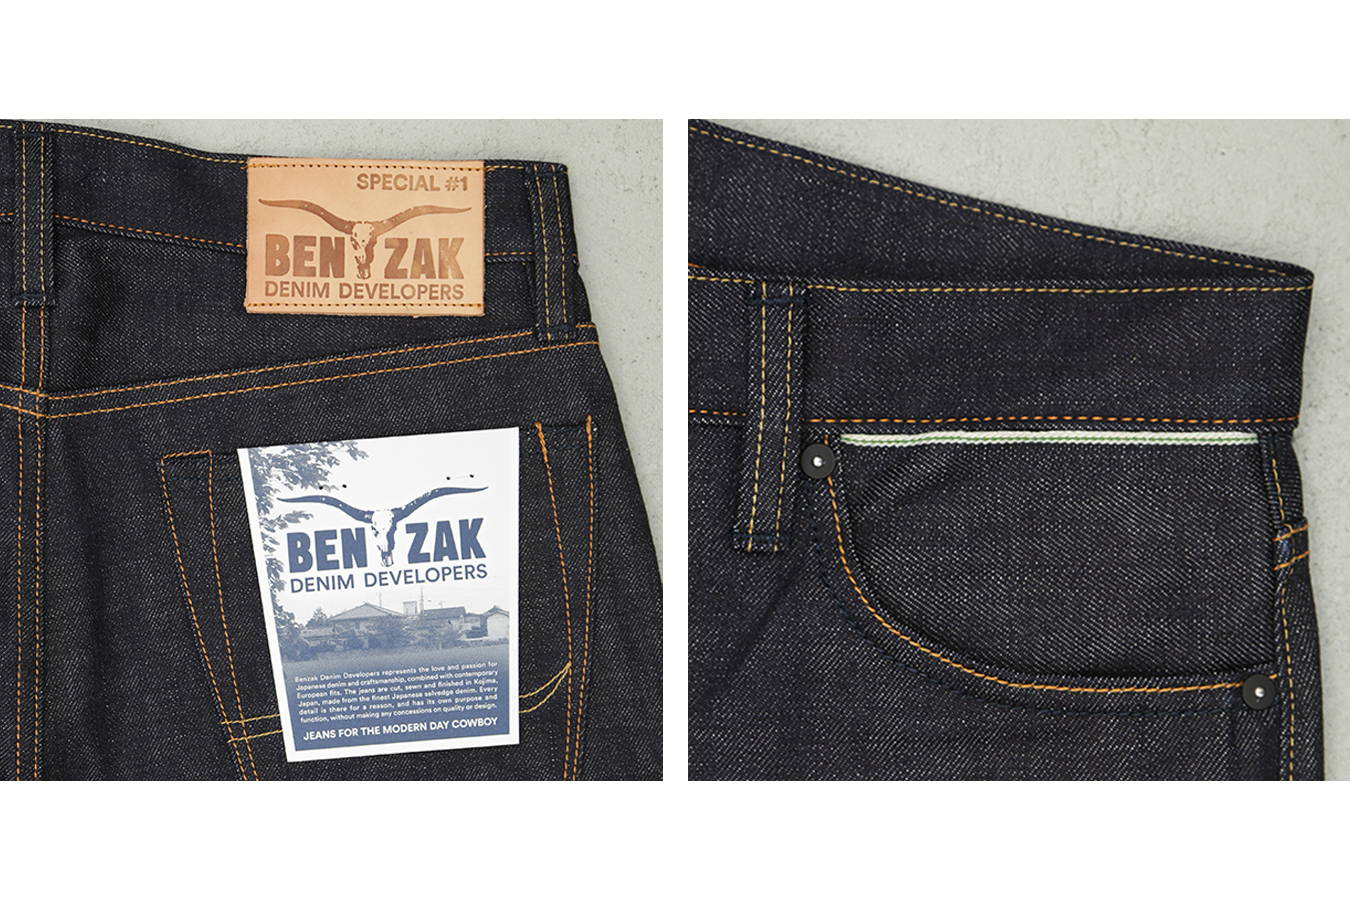 14 oz. Japanese selvedge denim from Collect Mills (JP), exclusively developed for BENZAK (special #1)